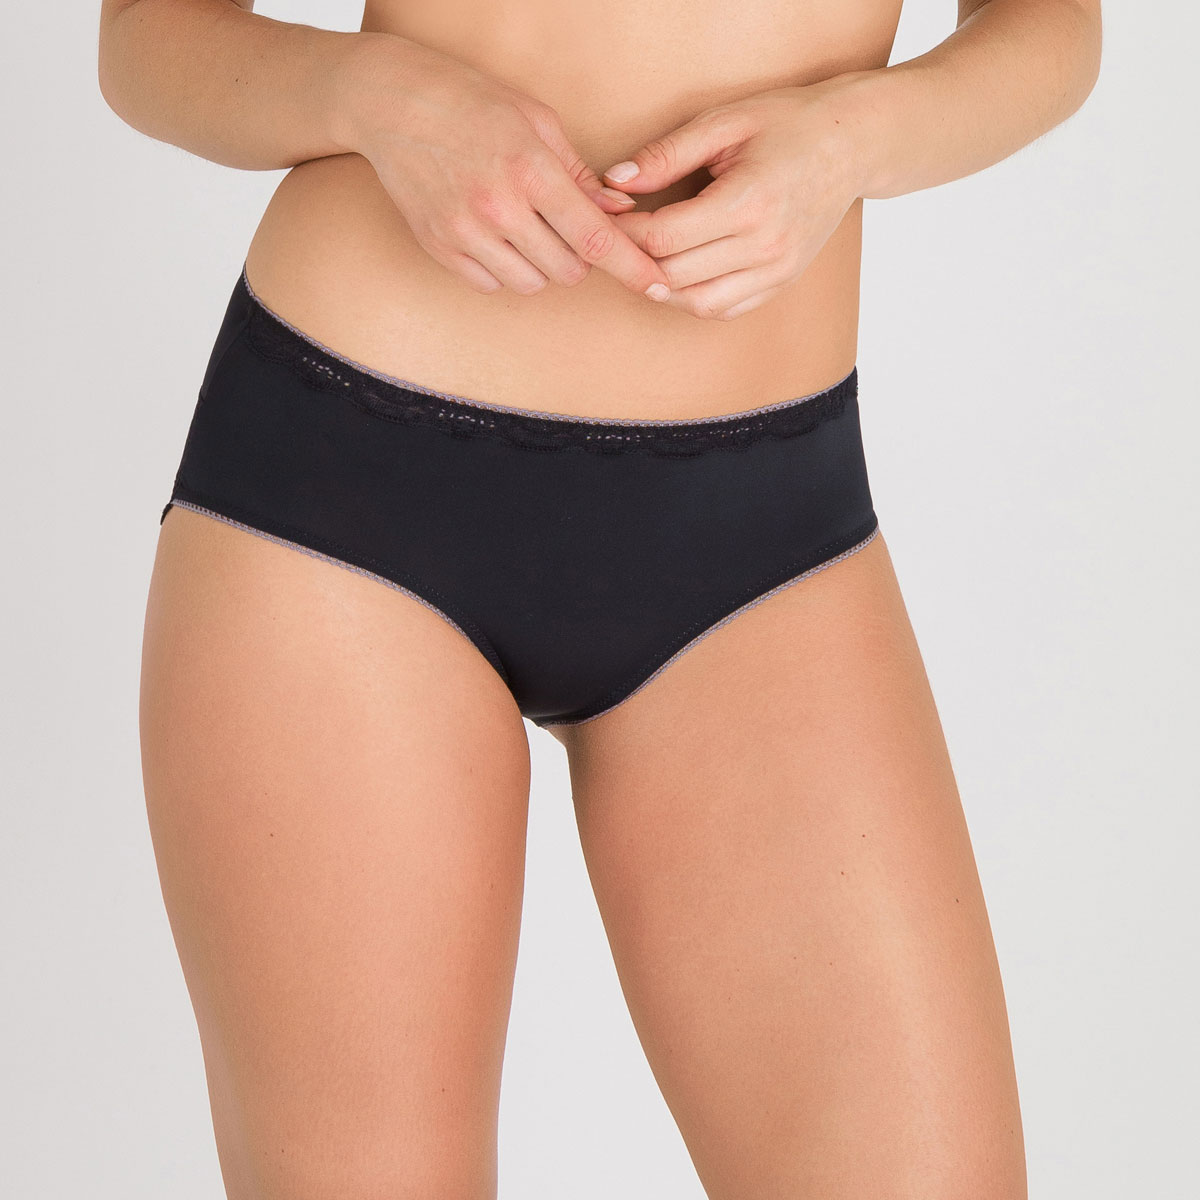 Midi Brief in Black – Invisible Elegance-PLAYTEX